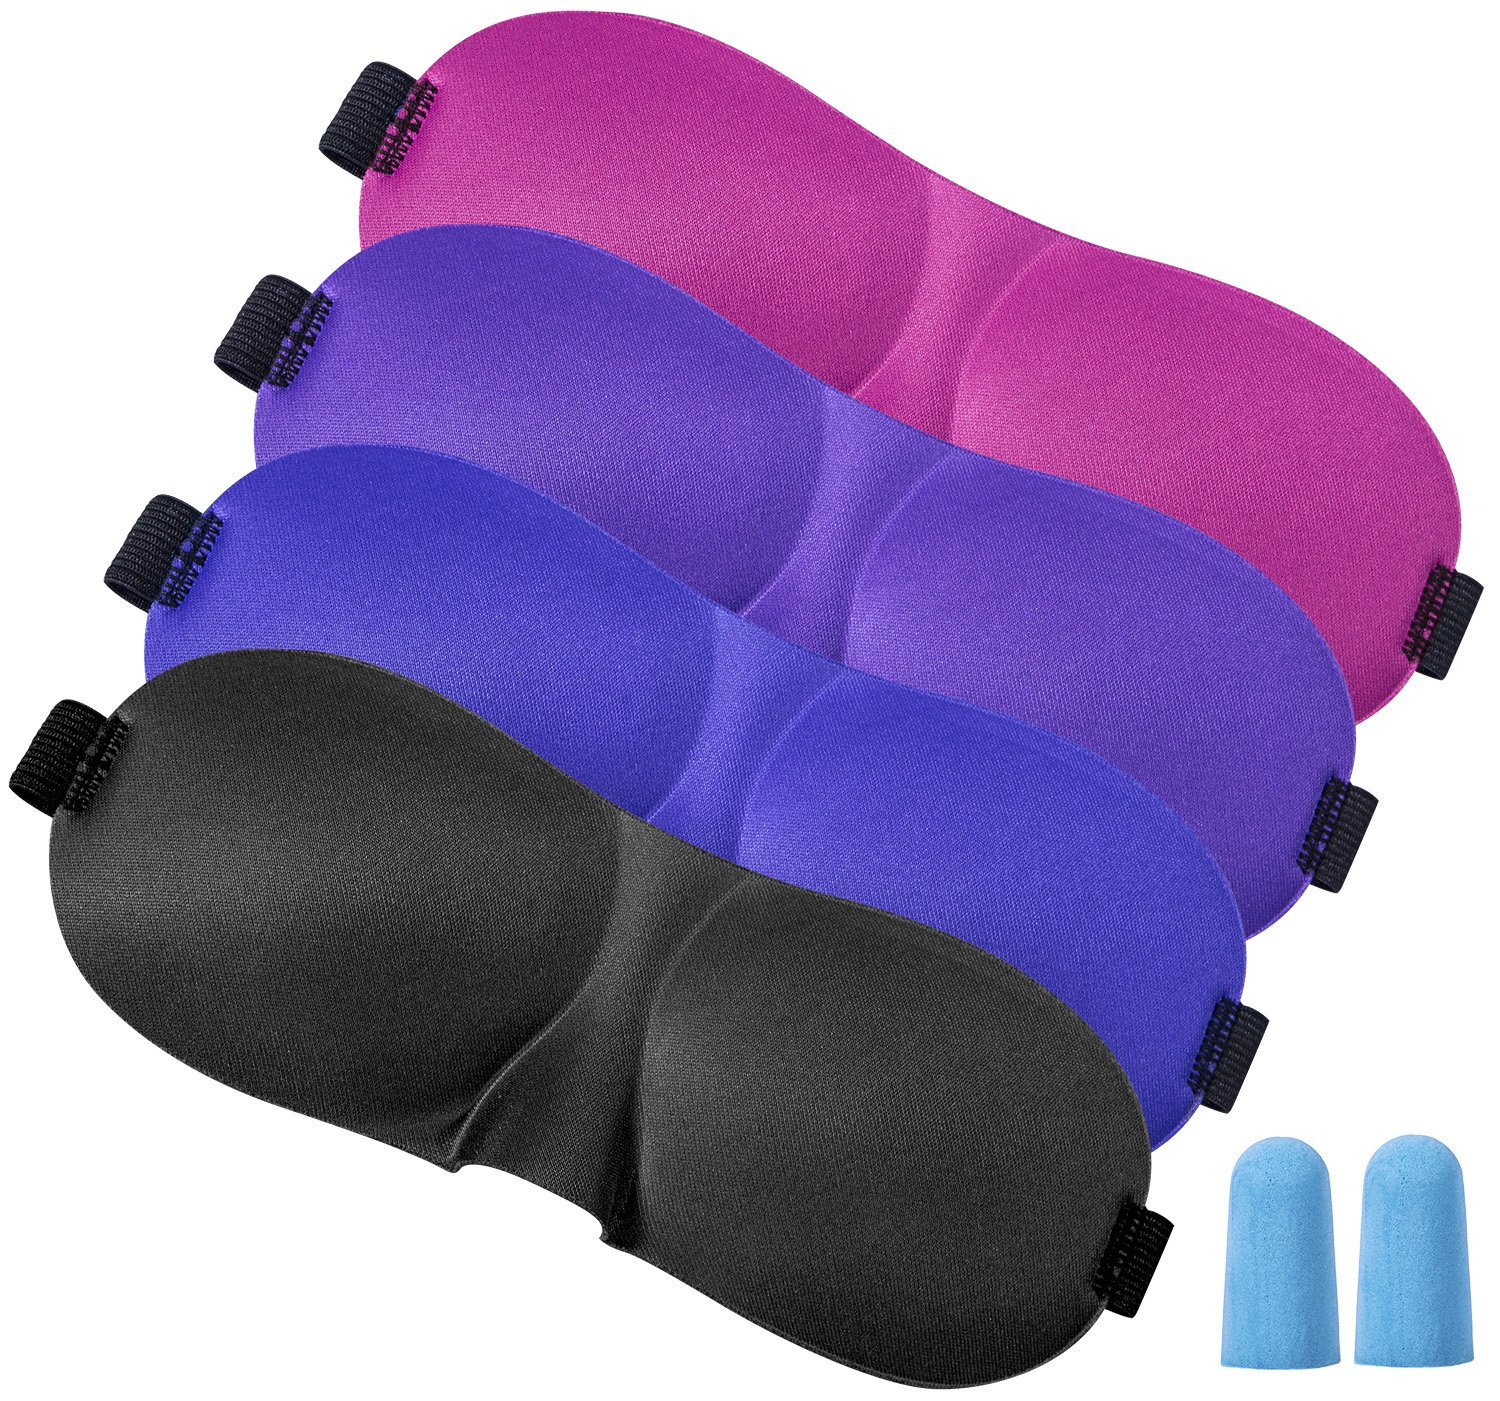 Fasker 4 Pack Eye Mask, Lightweight & Comfortable Super Soft Adjustable Sleep Mask With 2 Pack Ear Plugs | Works With Every Nap Position | Ultimate Sleeping Aid/Blindfold, Blocks Light CLO-012-1